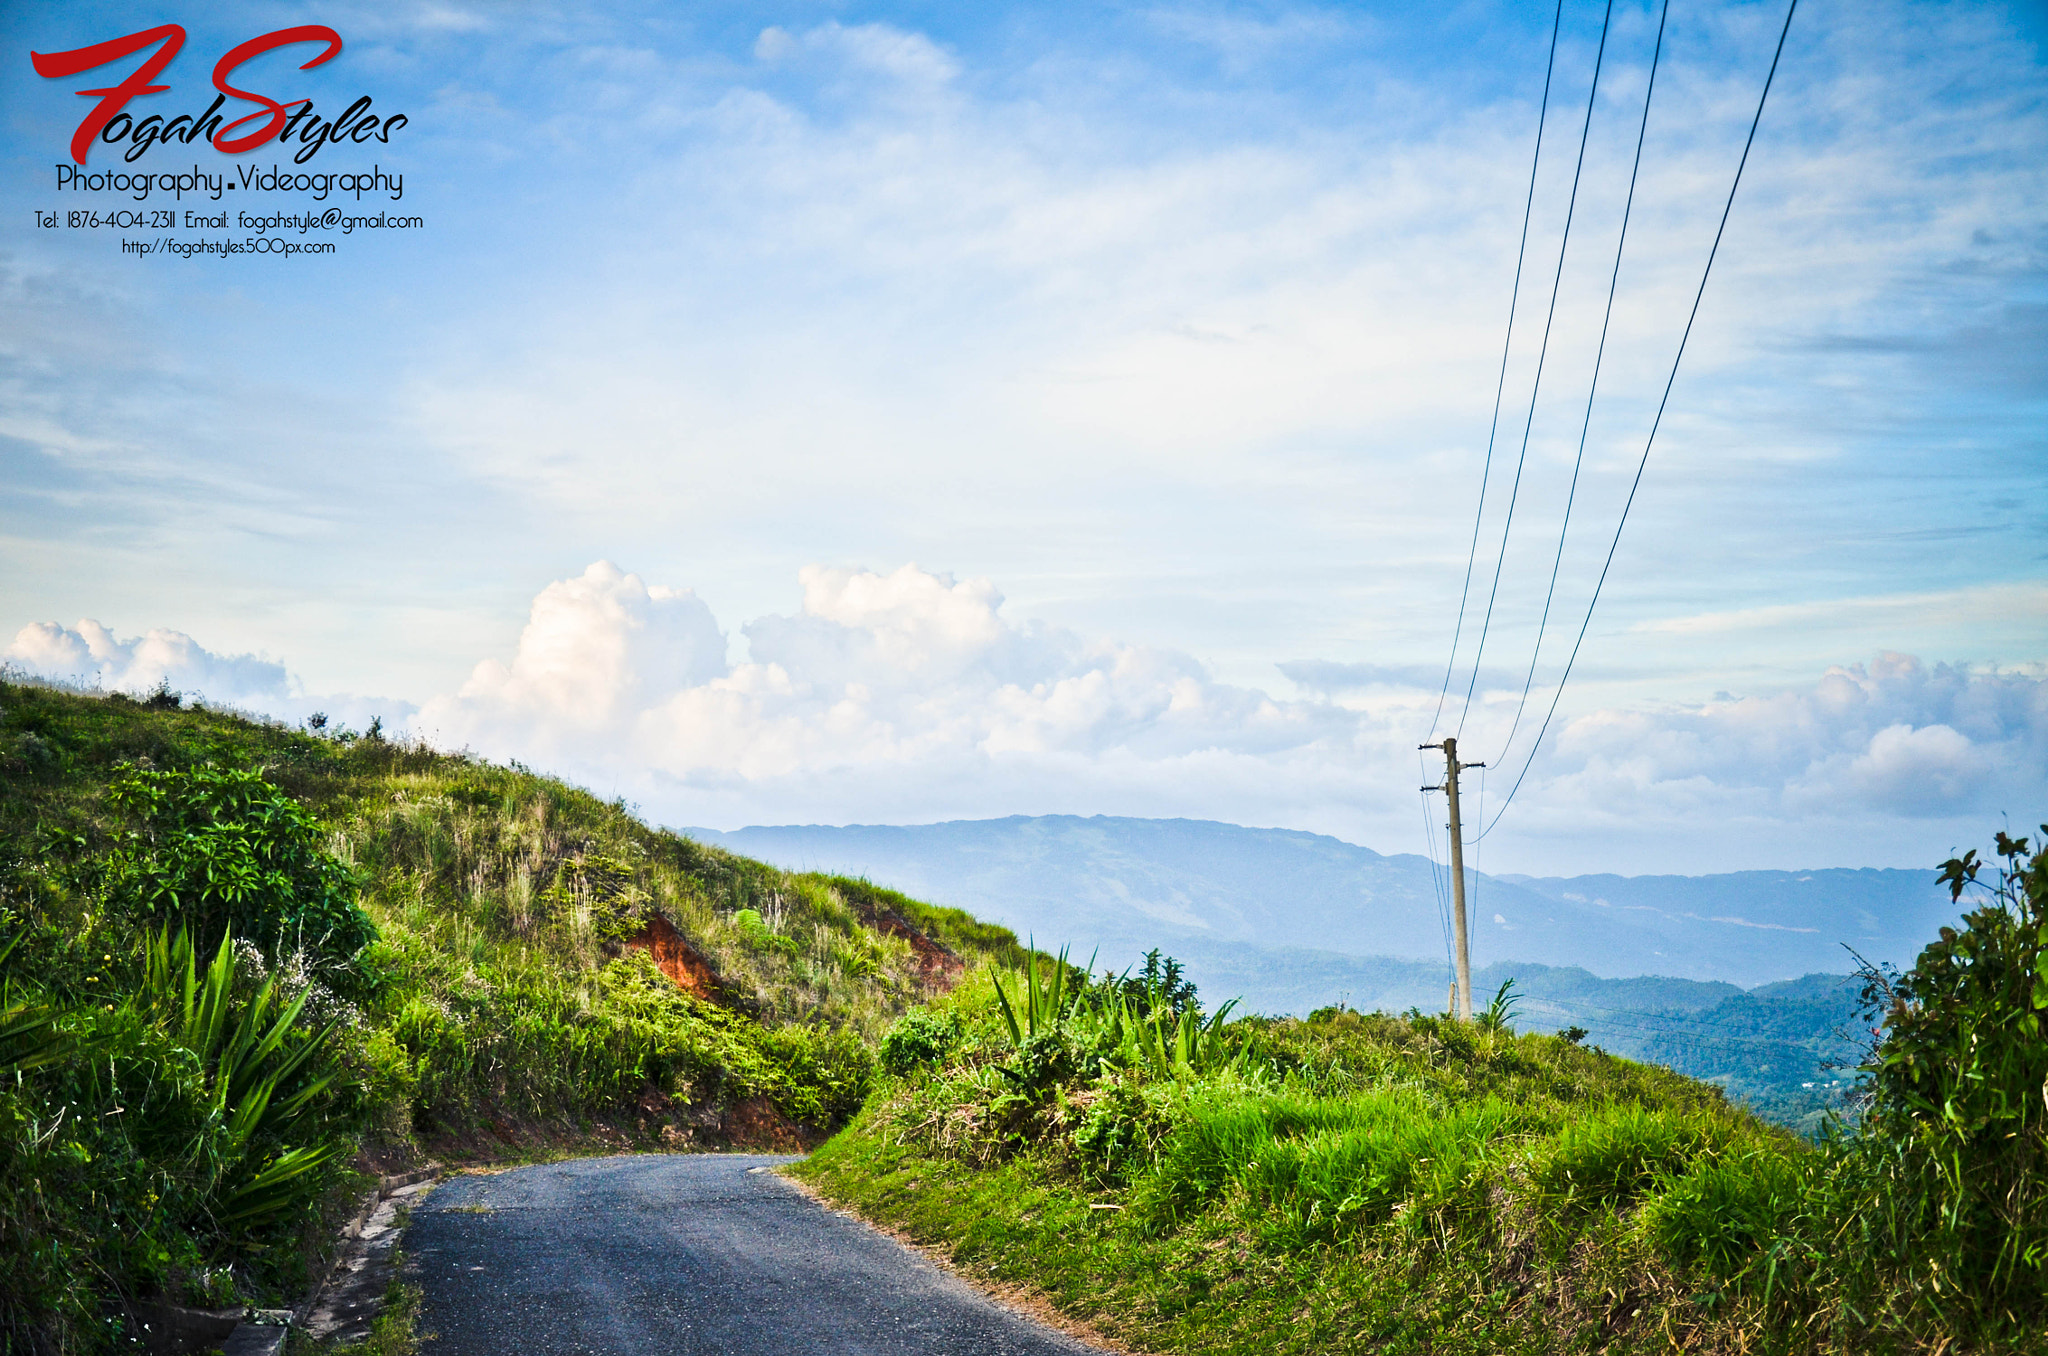 Photograph Point Hill Jamaica by Fogah Styles on 500px